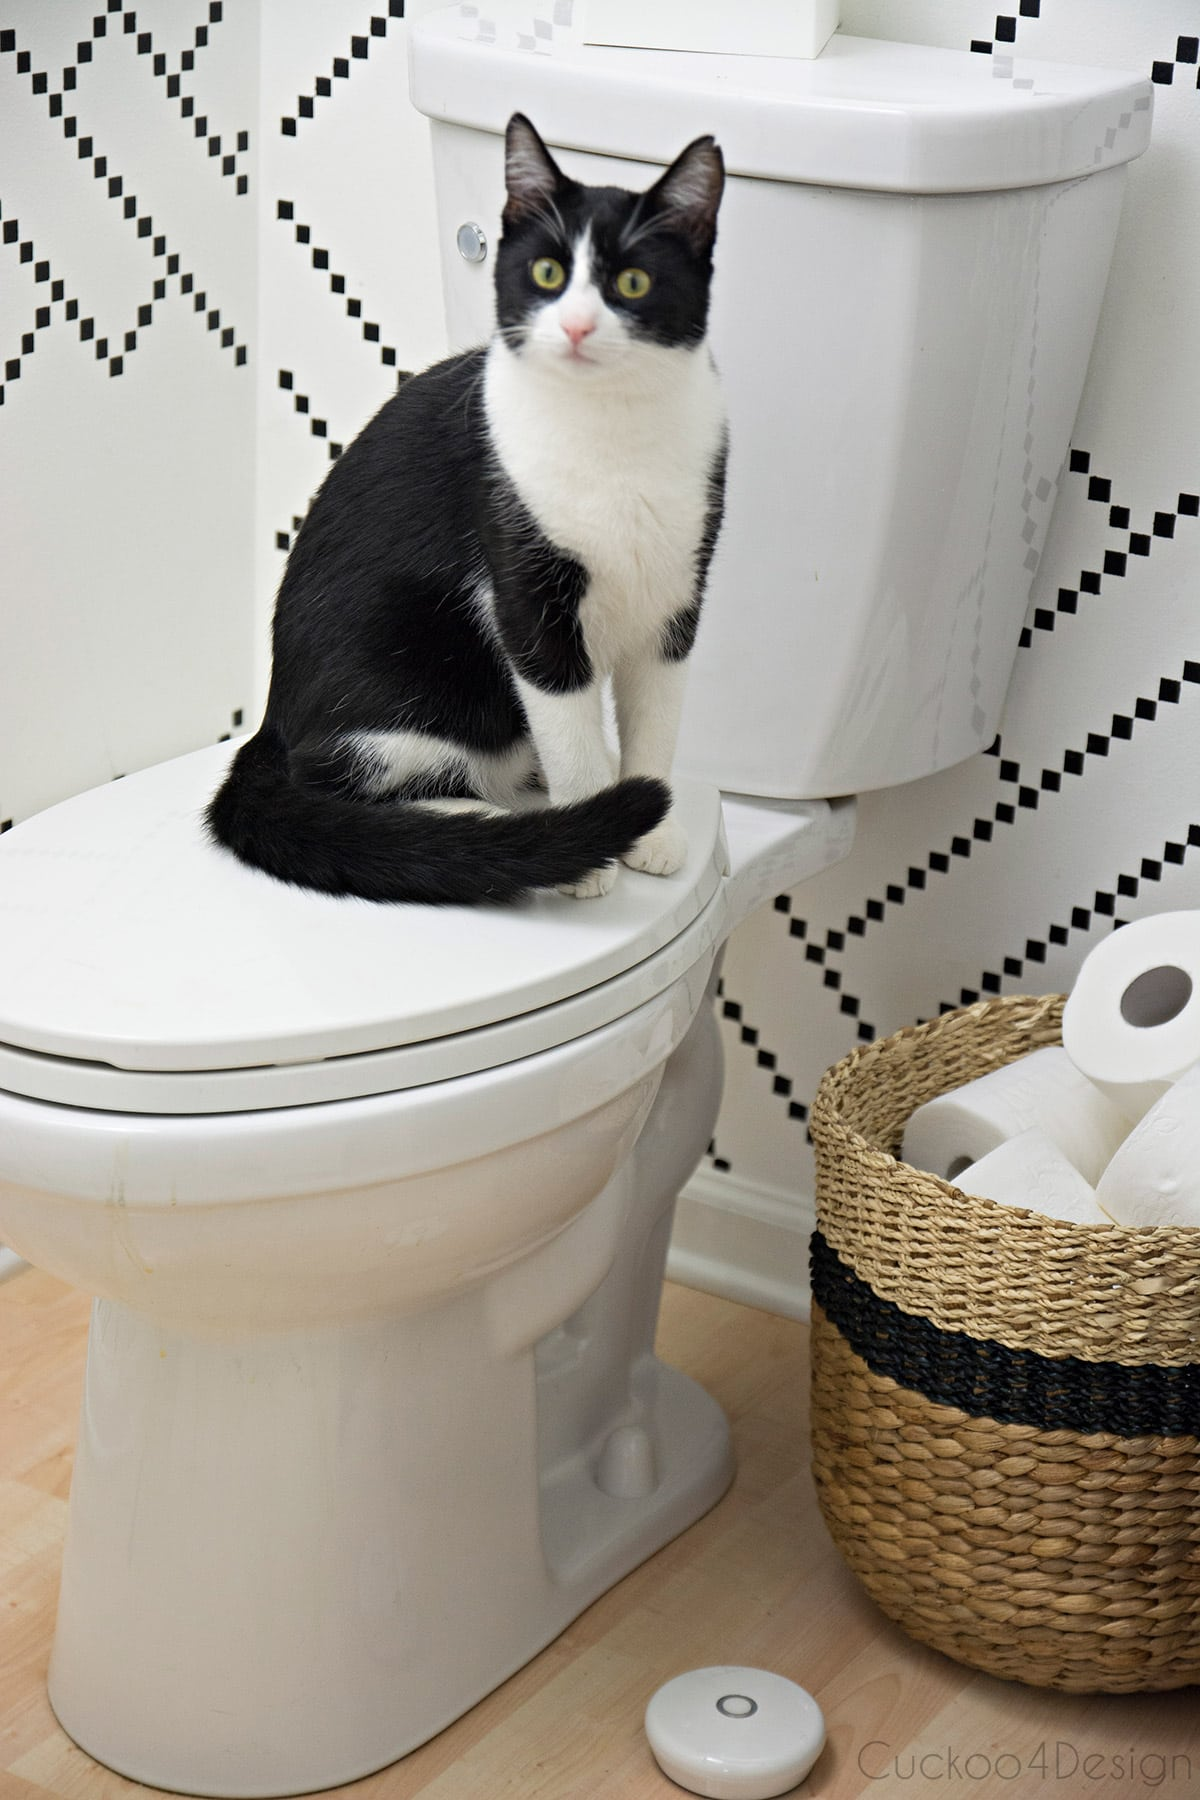 cat sitting on toilet to alert for water leak